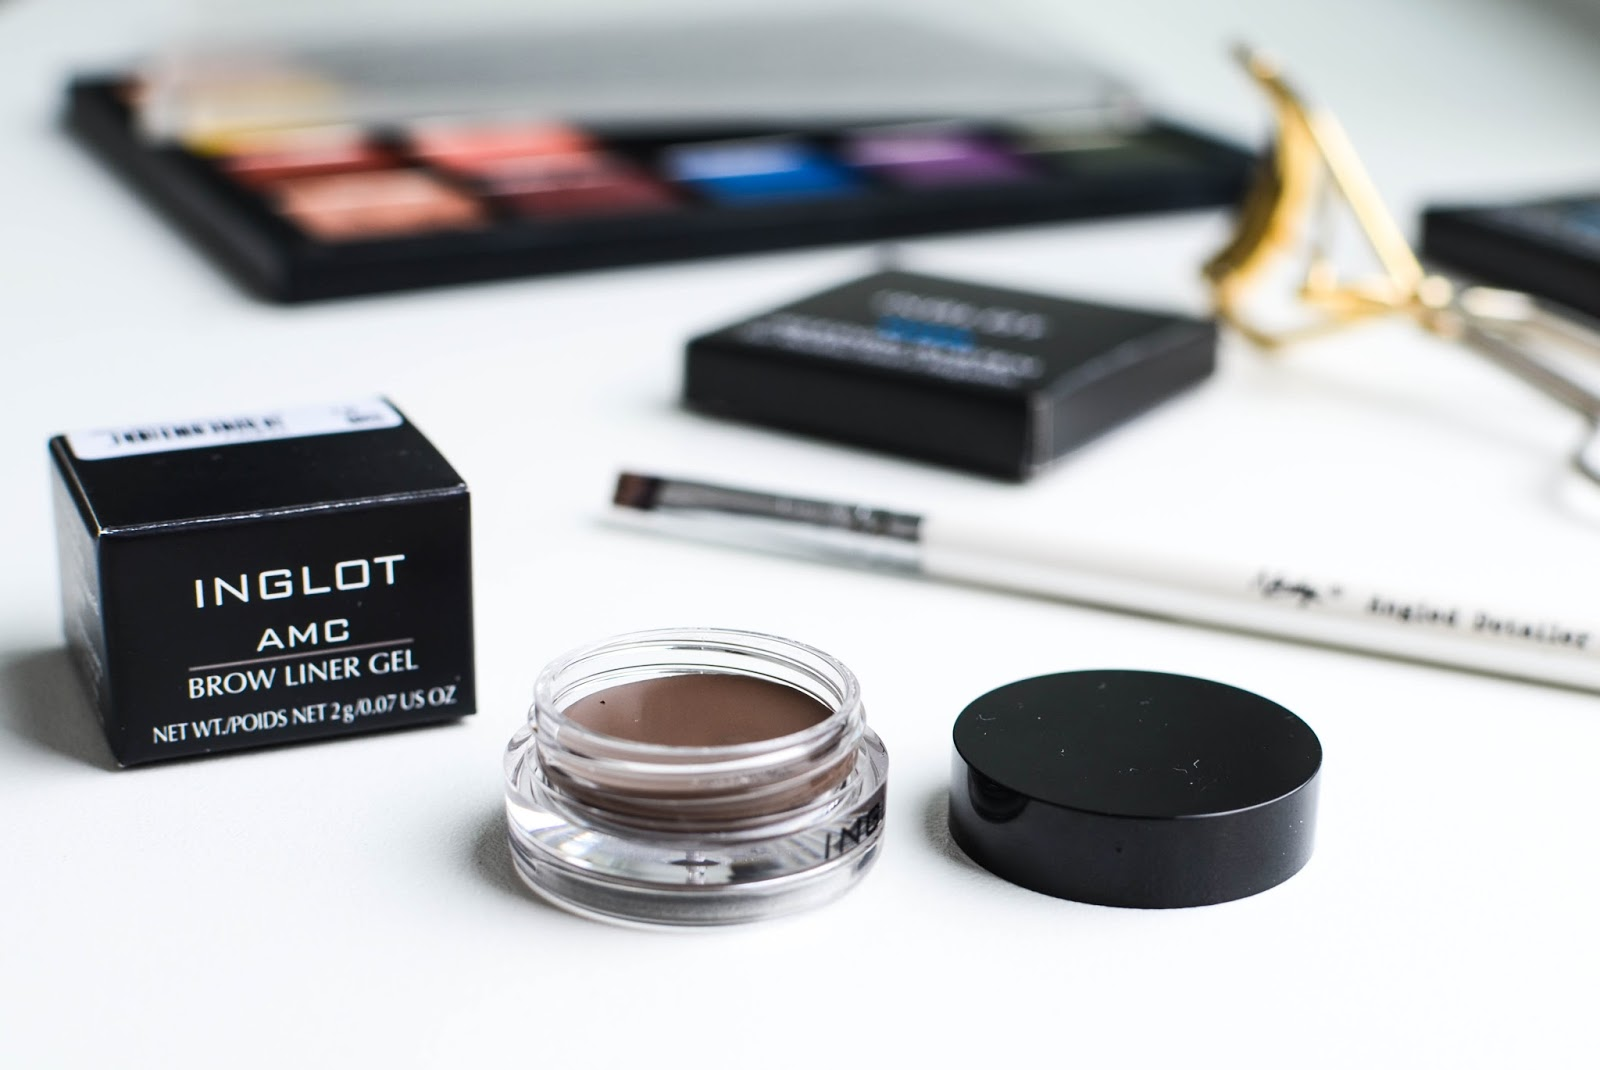 Inglot AMC brow liner gel (цена – от 600 руб.)